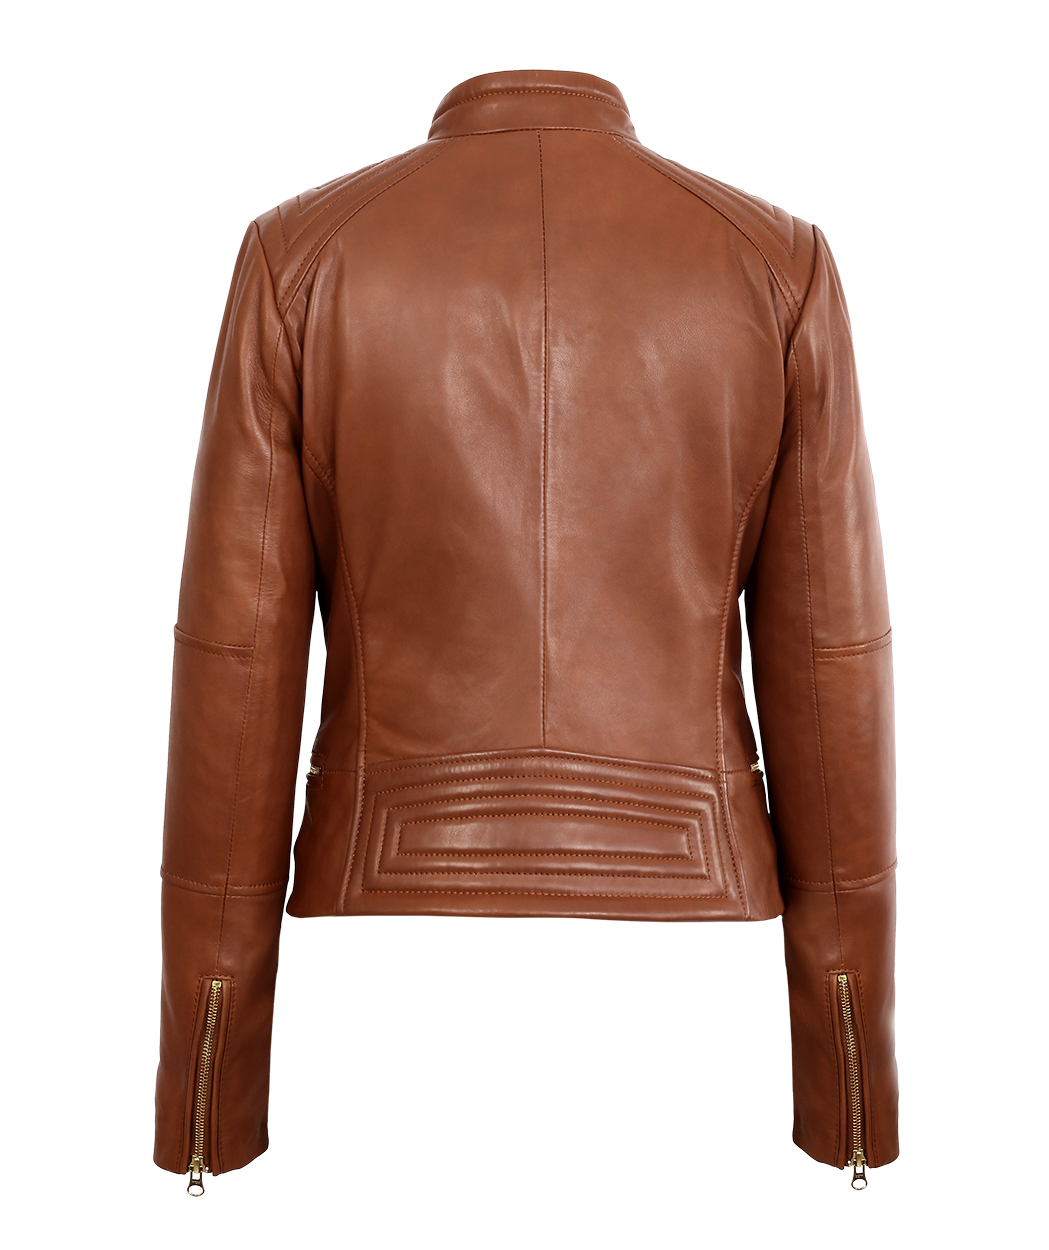 16c297ad853 Womens Brown Asymmetrical Lambskin Real Leather Jacket Light Gold ...